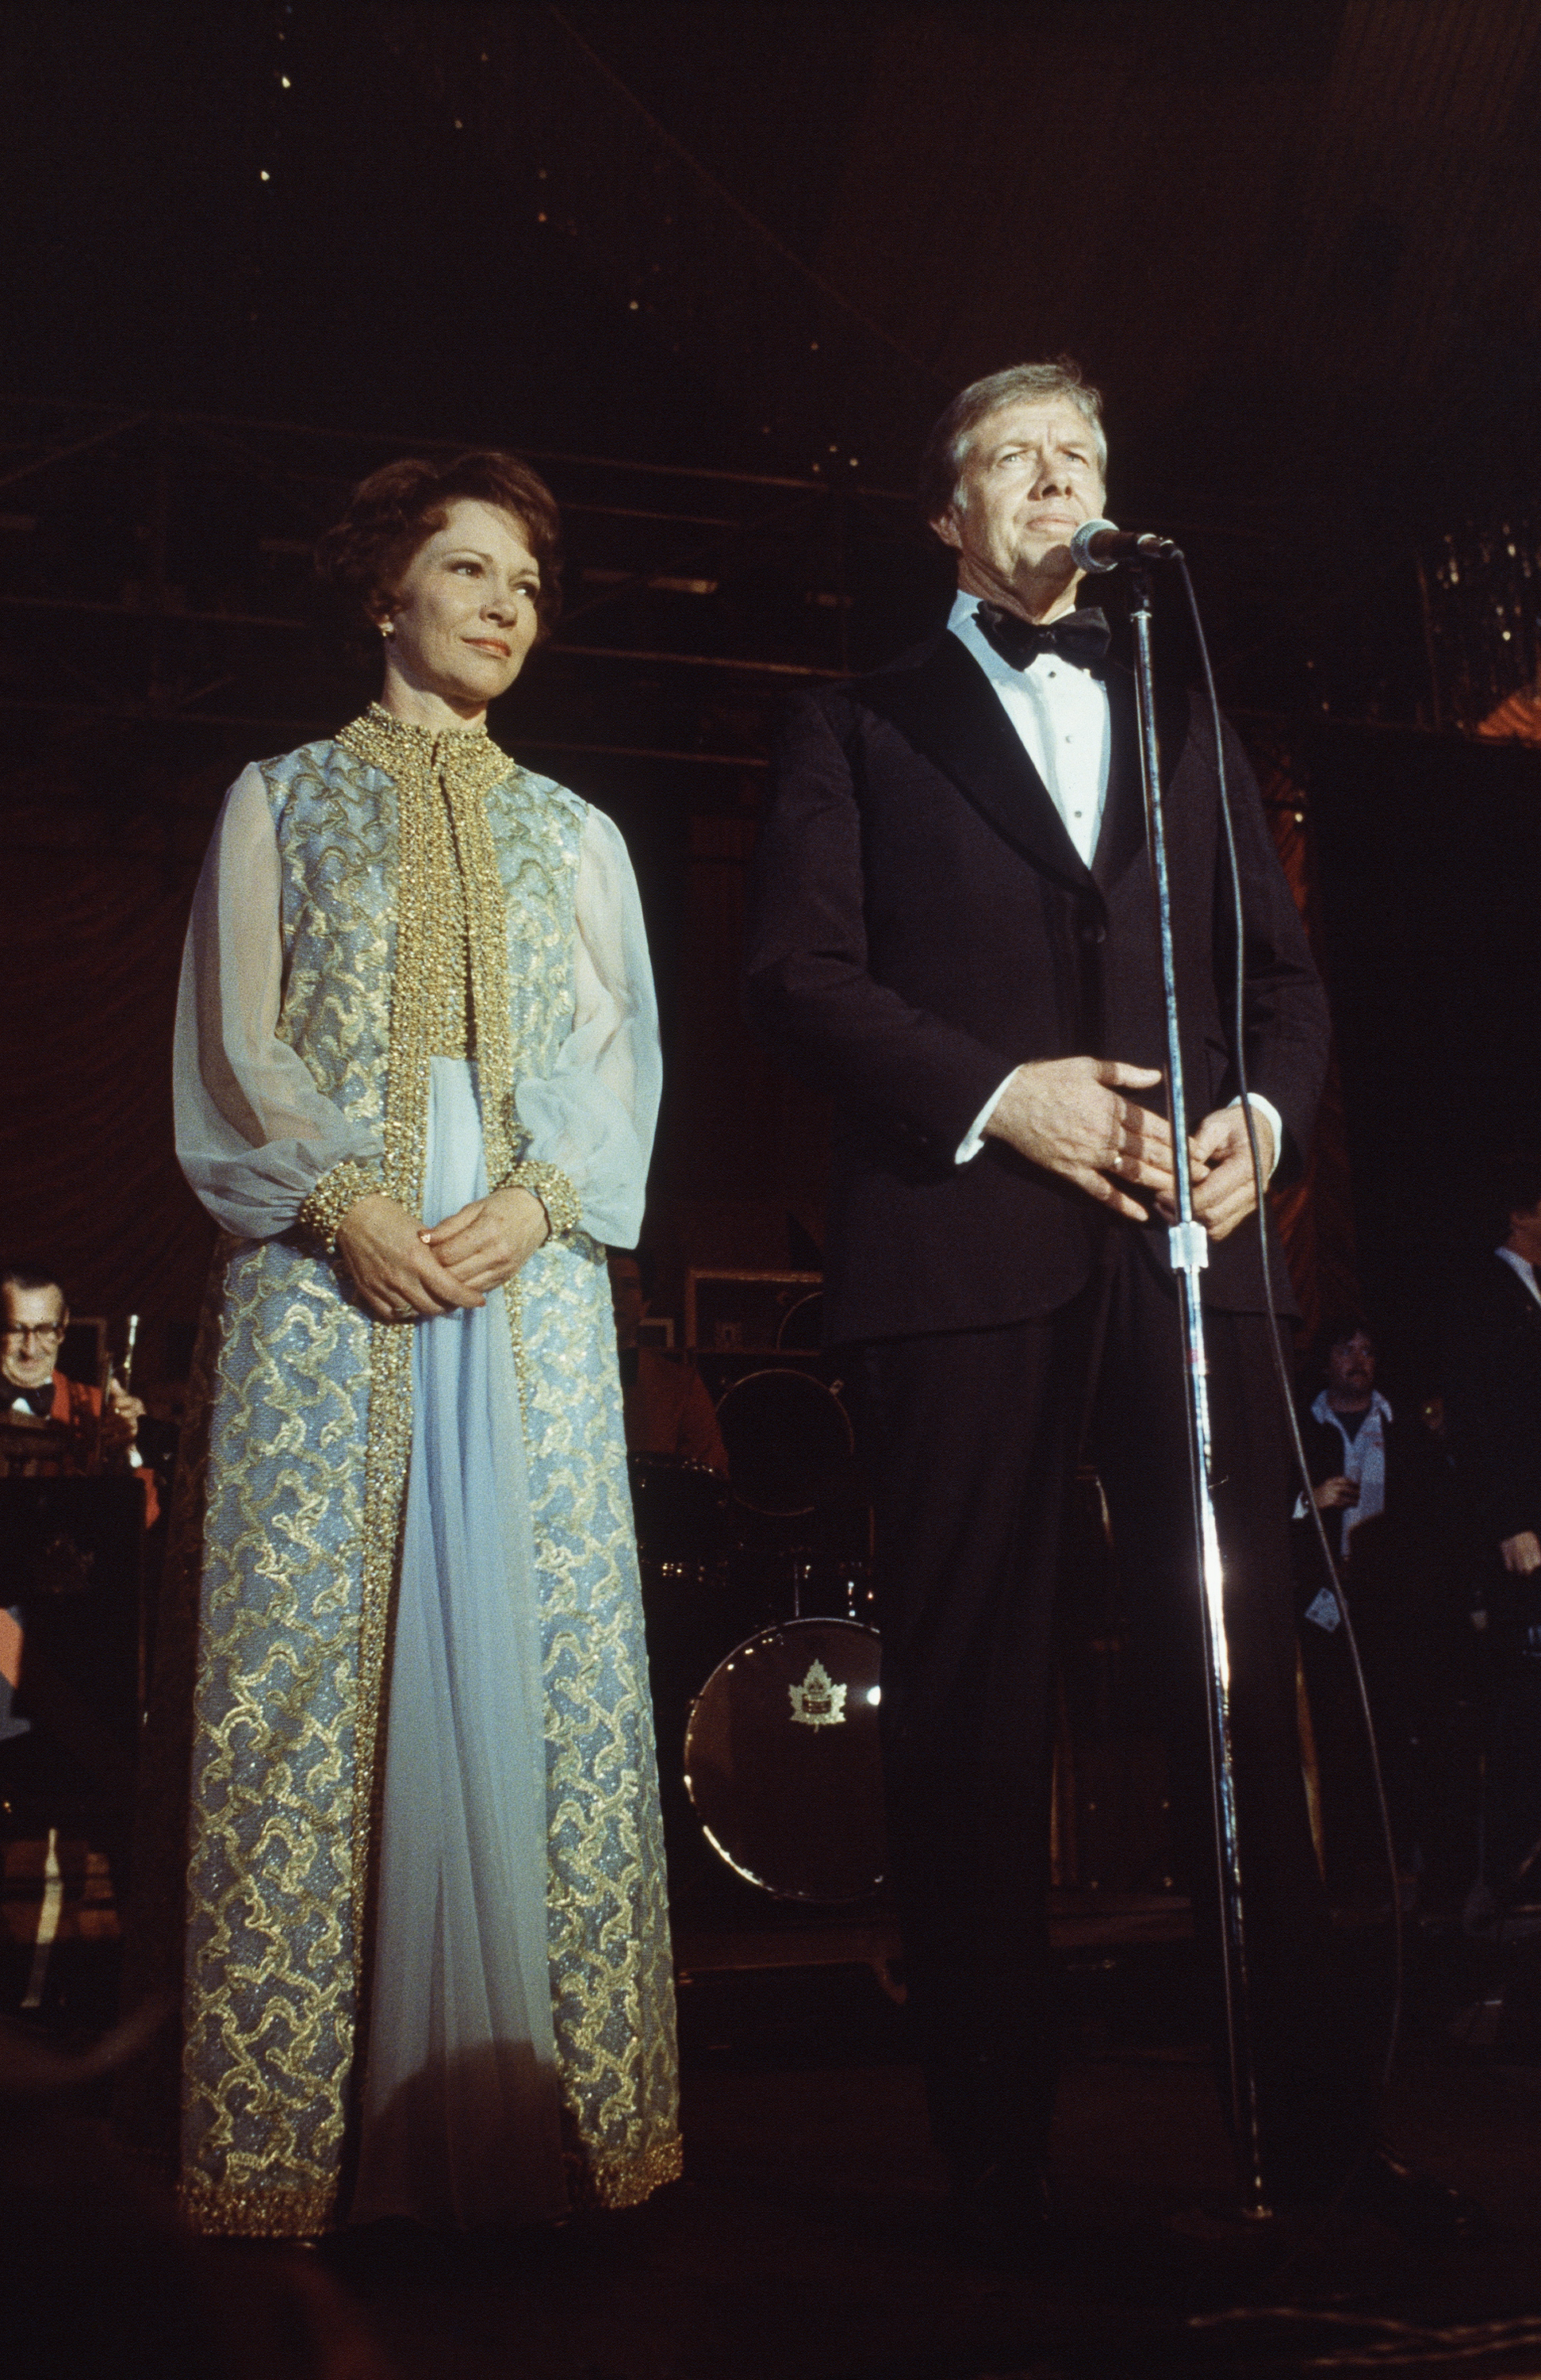 Rosalynn Carter, Mary Matise for Jimmae, 1977: She sported a coat with gold embroidery over a sleeveless, blue chiffon gown with gold trim -- the same dress she wore when her husband became governor in 1971.